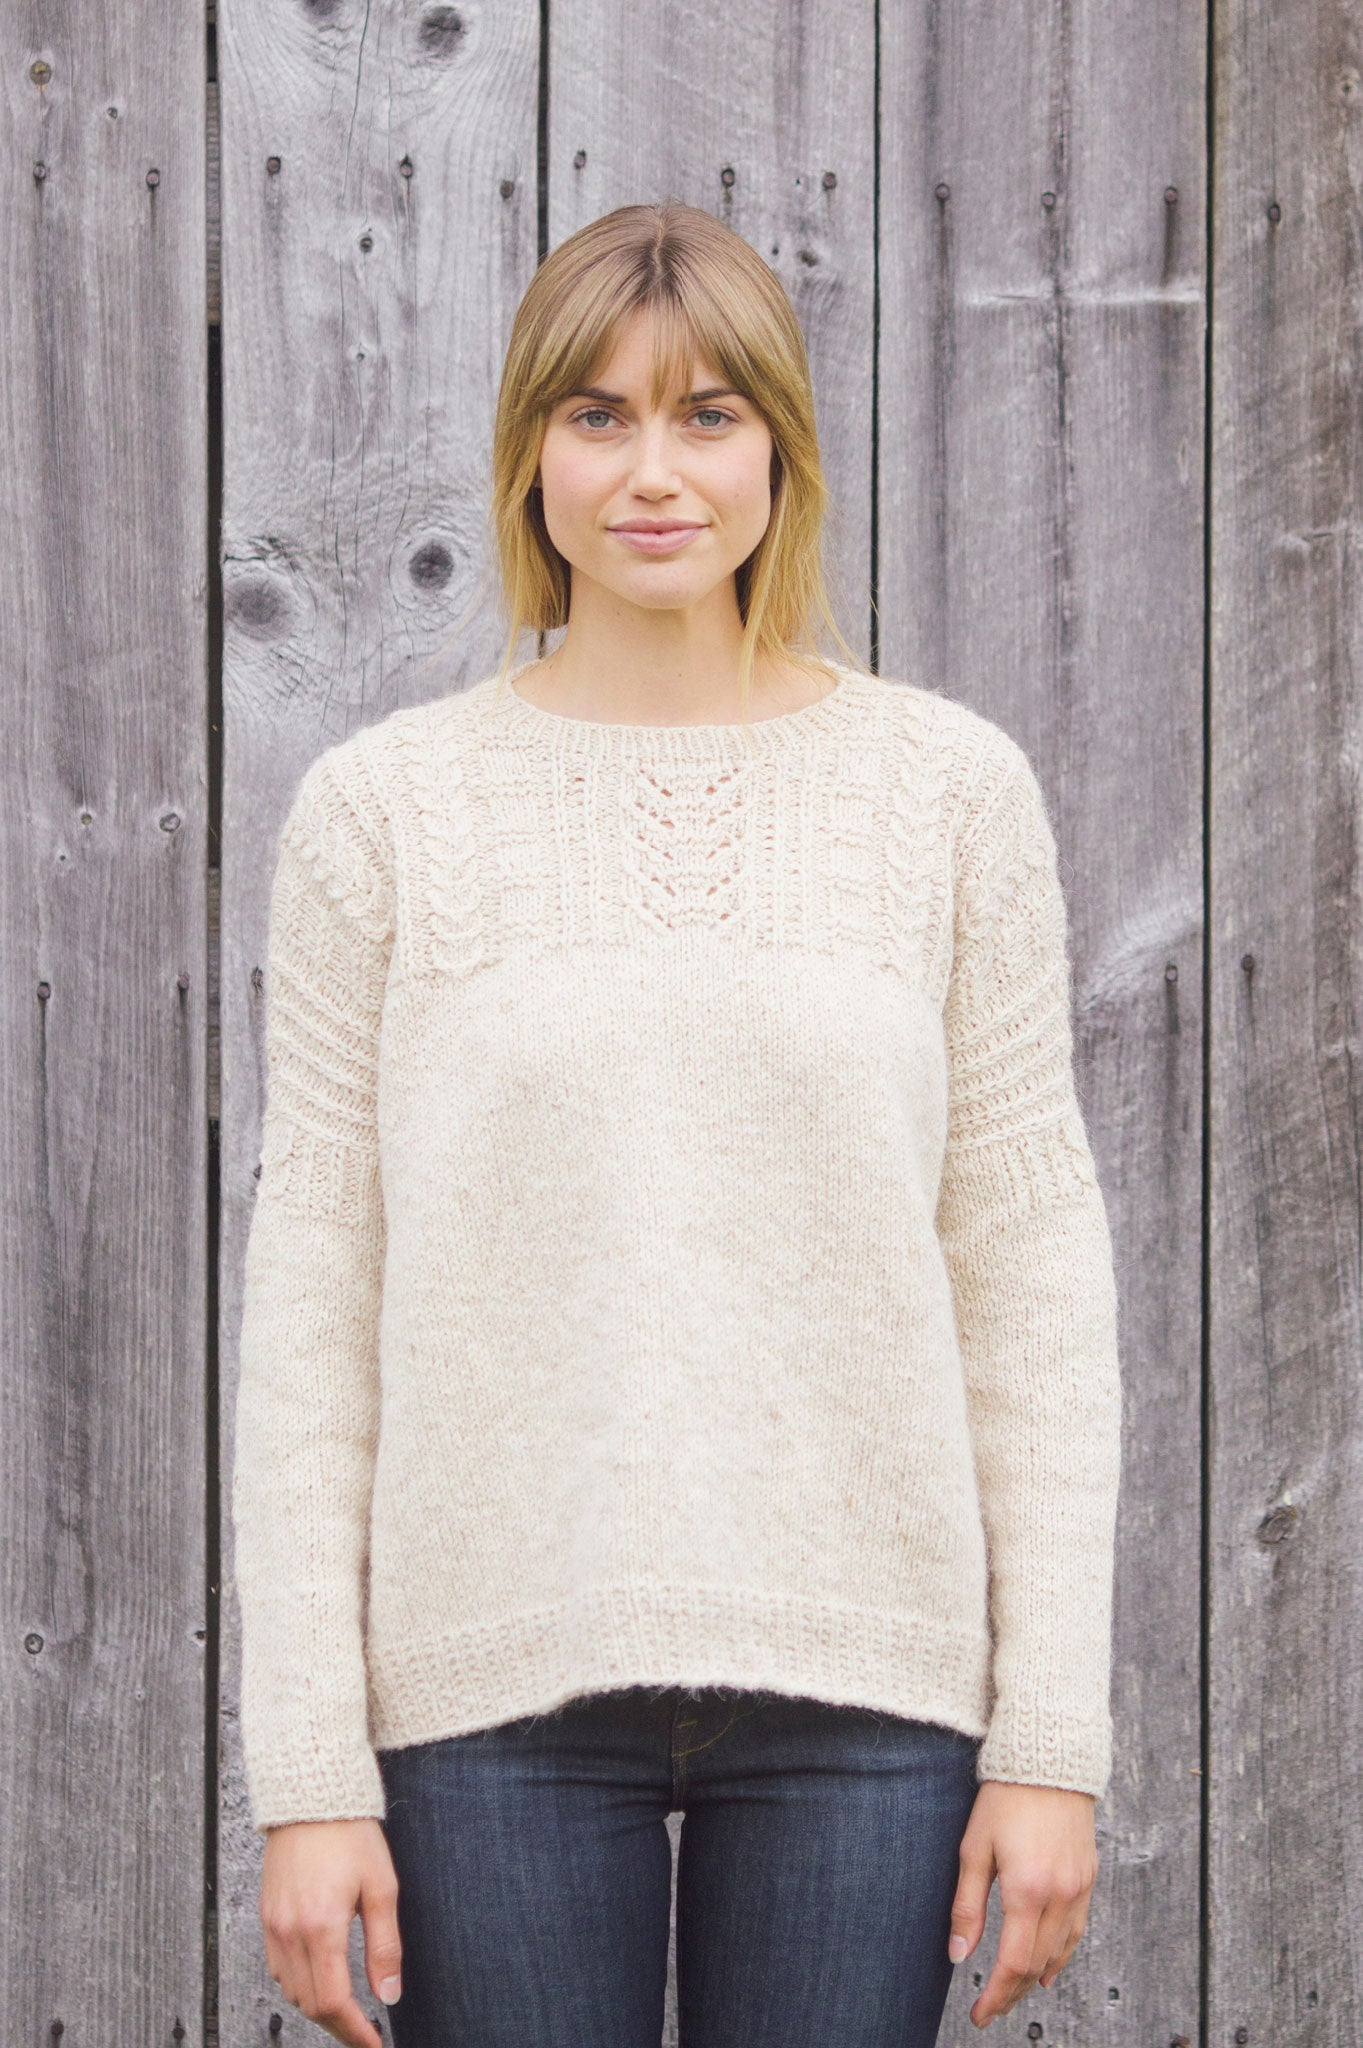 675c790d4 willow pullover knitting pattern - Quince and Co